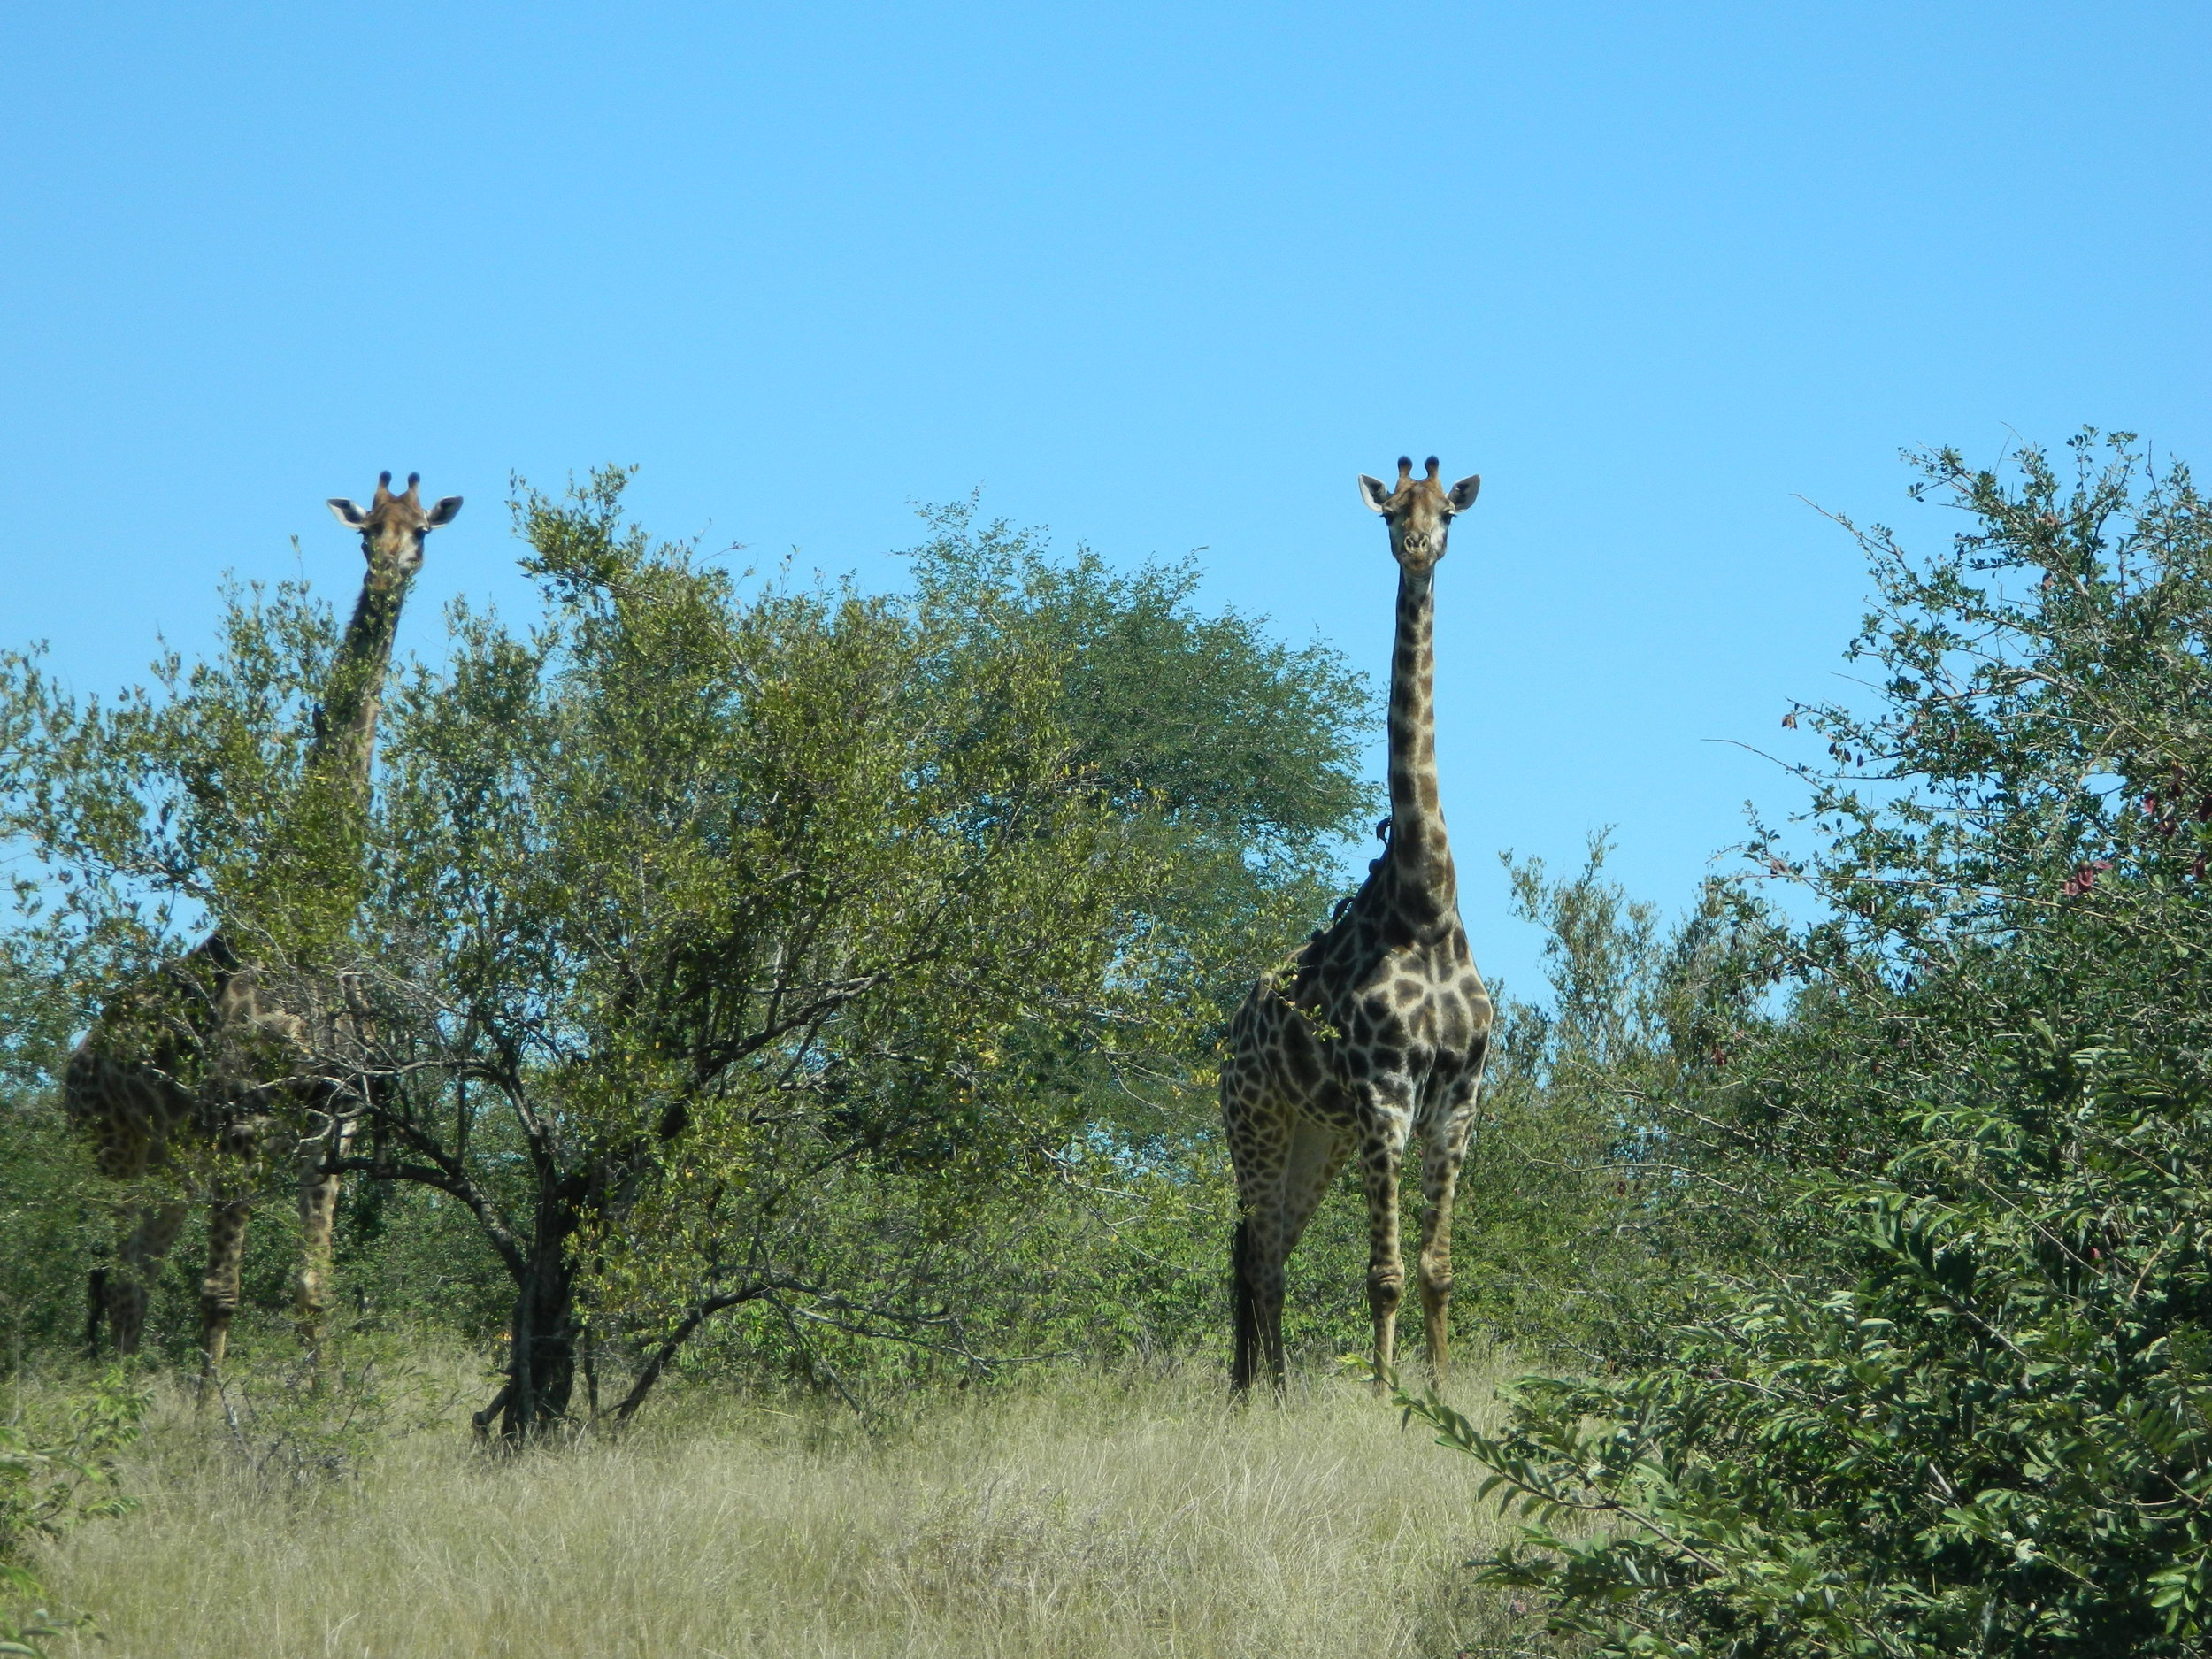 Giraffes already have high blood pressure to ensure circulation up to their heads, but these guys must have really been freaking out, given what was just down the road.